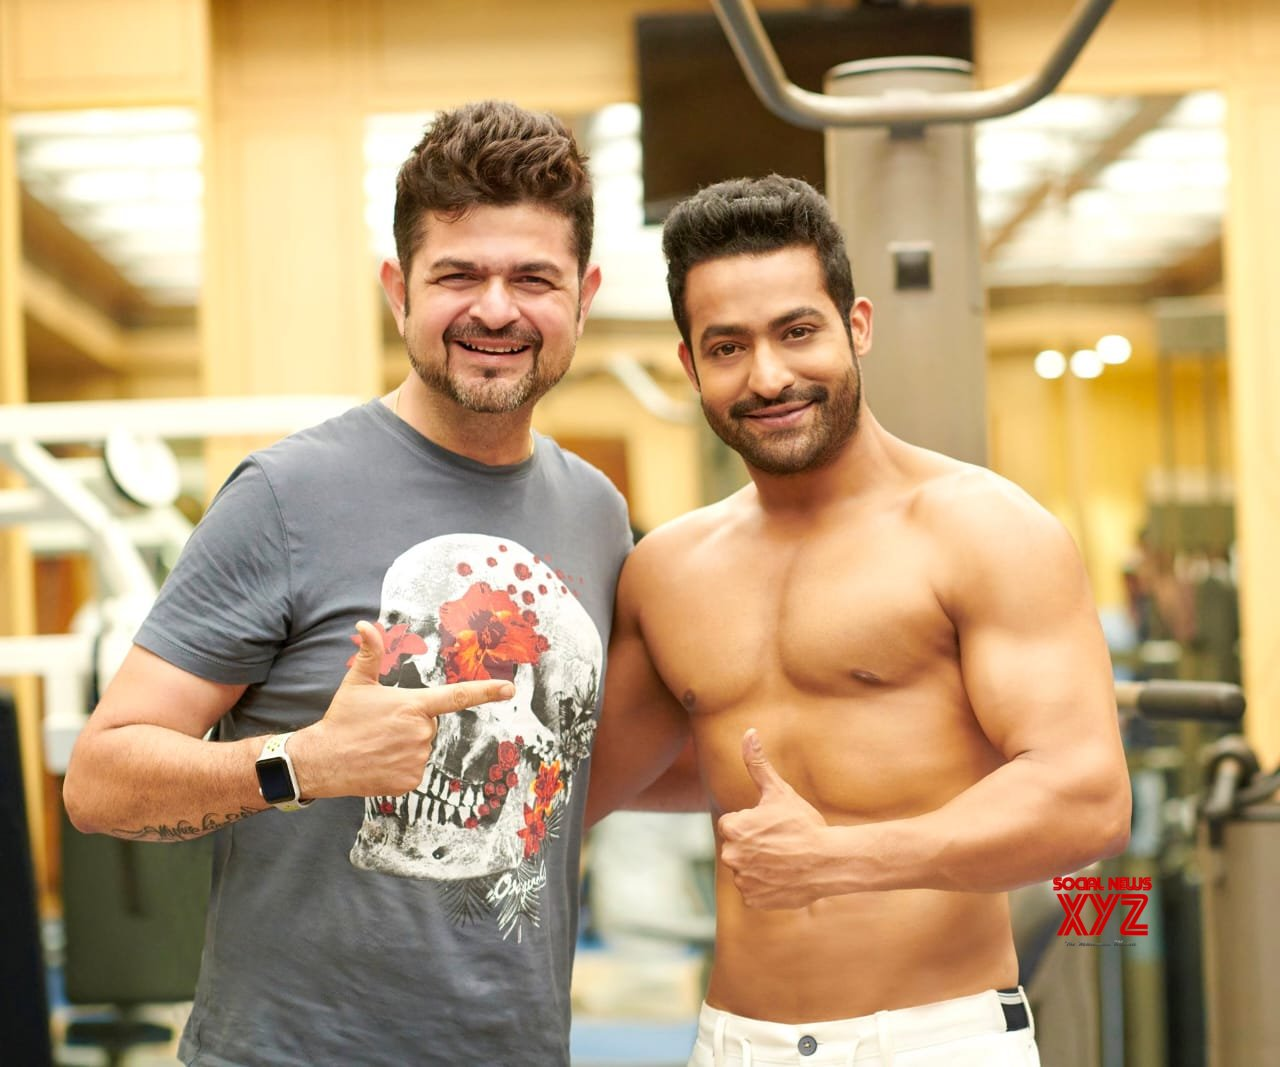 Young Tiger NTR Still With Dabboo Ratnani During His Photo Shoot